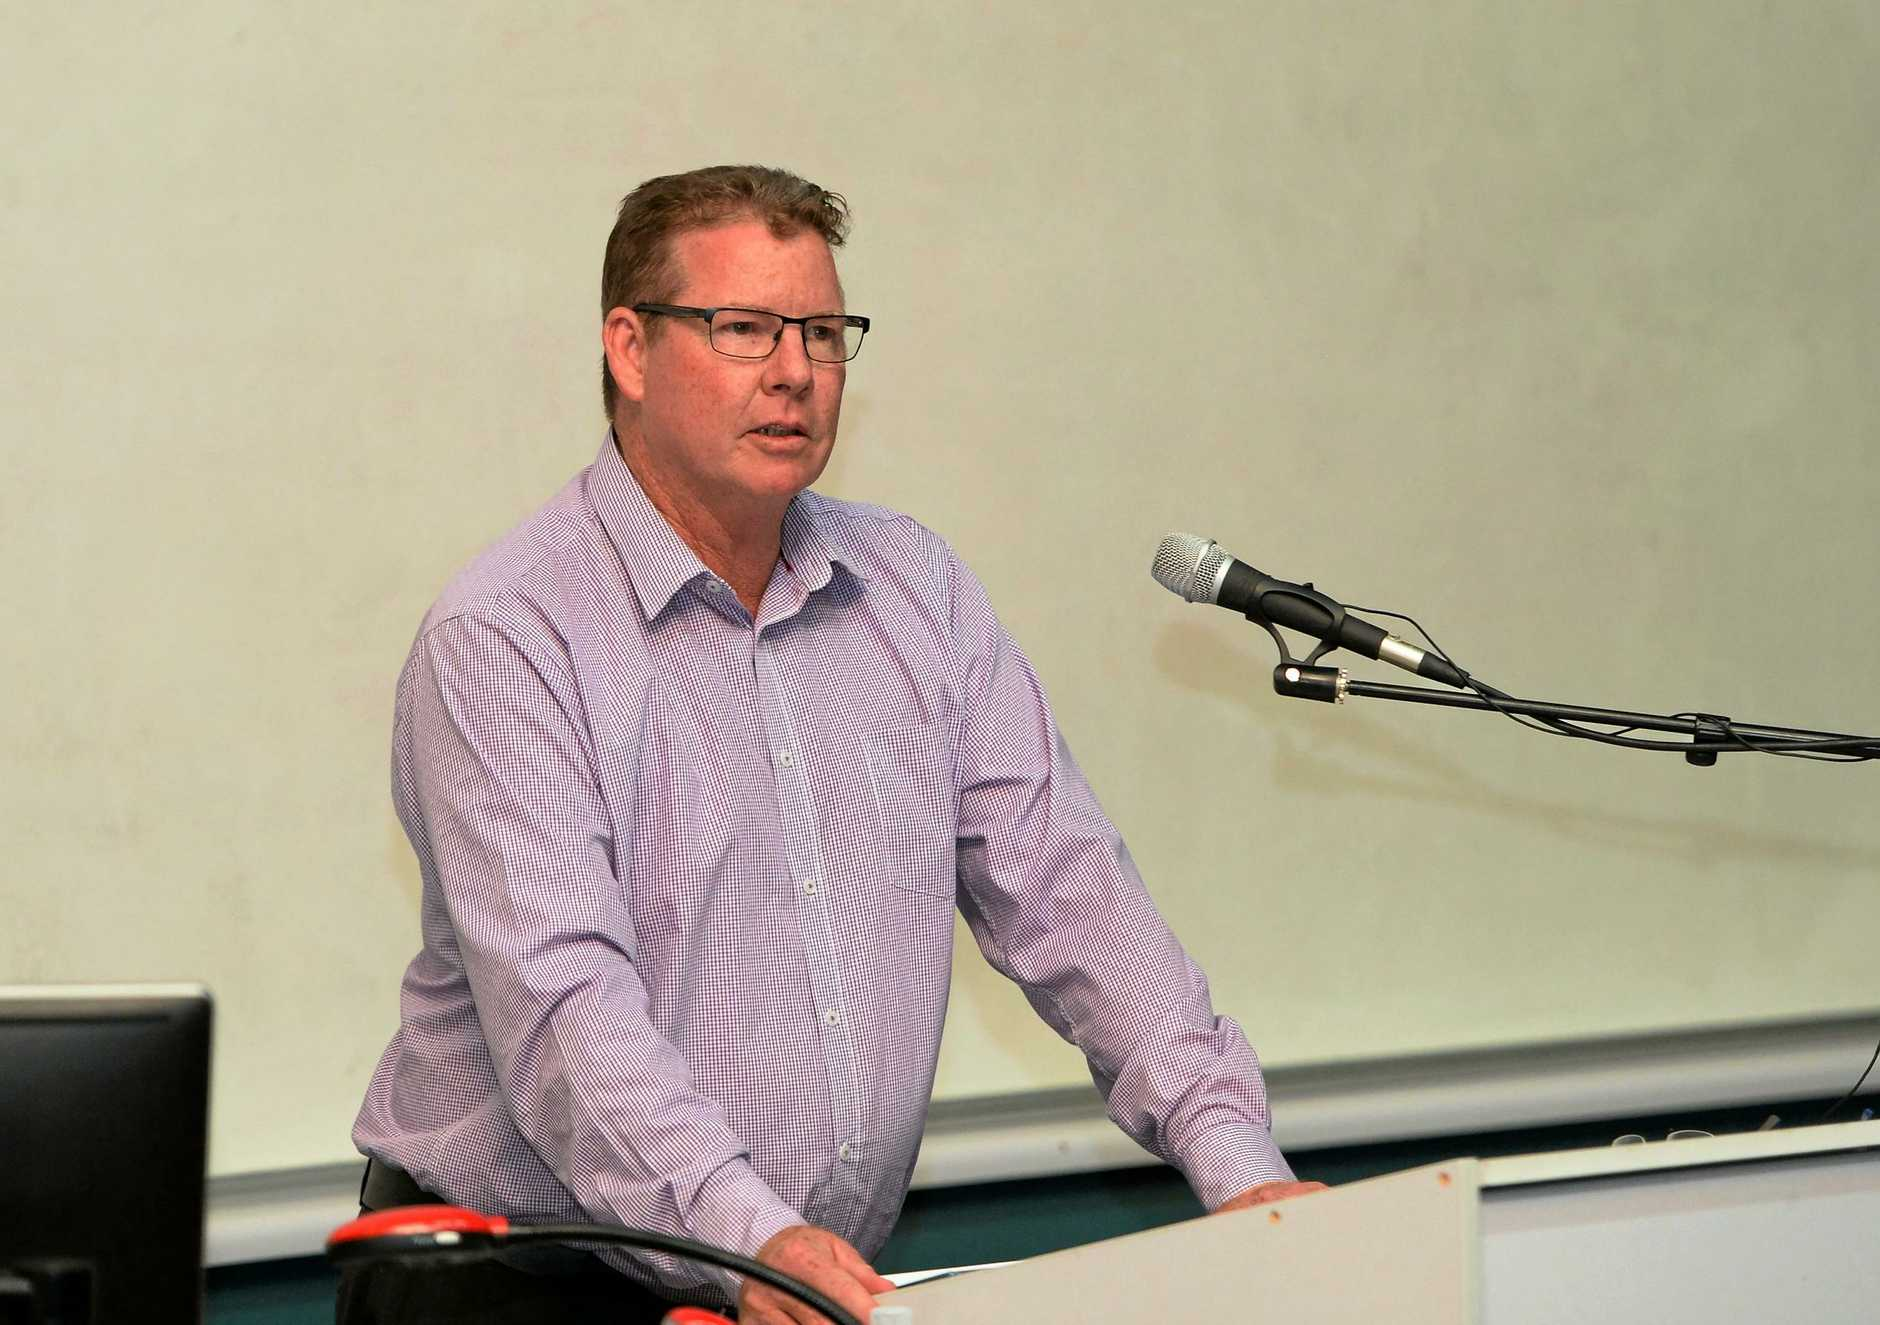 Barry O'Rourke (ALP) at the candidates forum at CQUniversity.